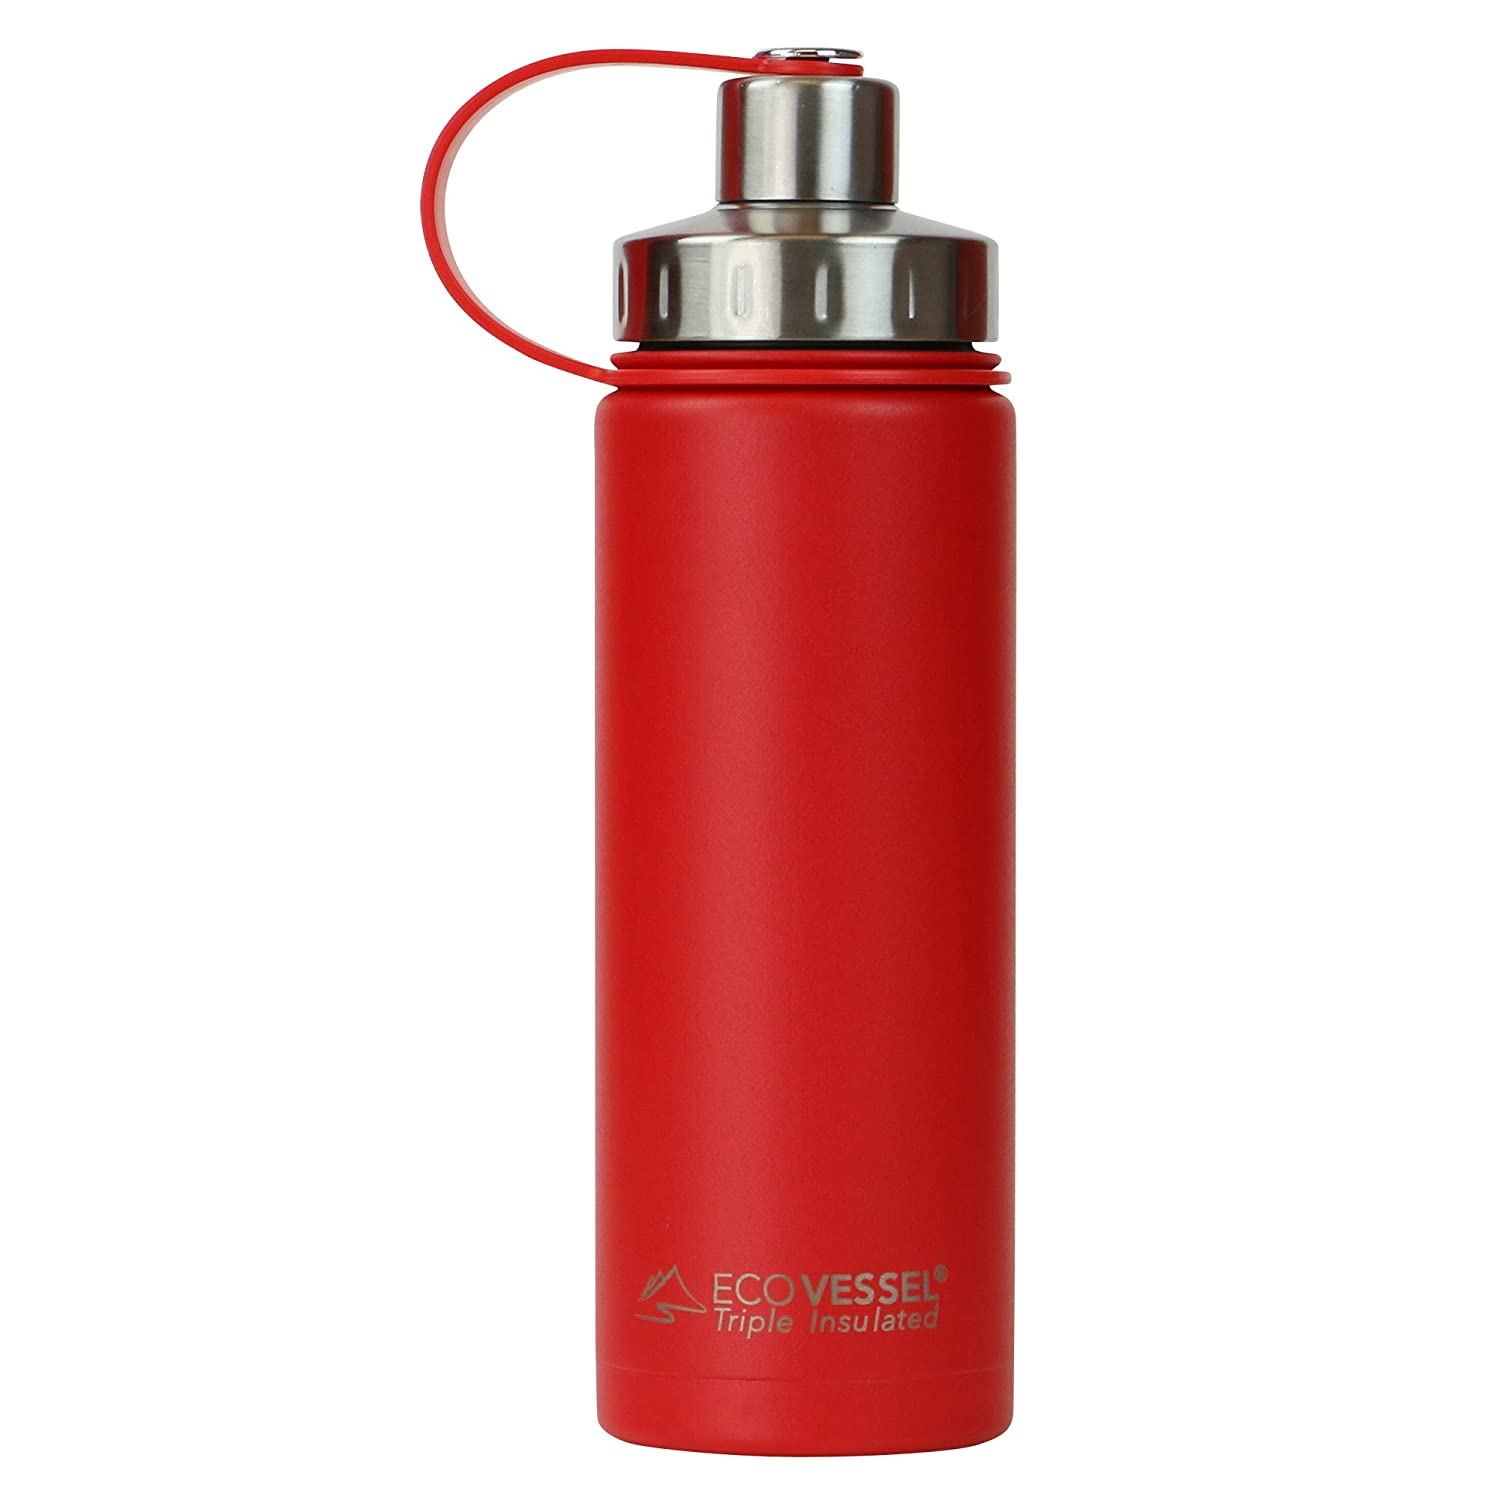 EcoVessel BOULDER TriMax Vacuum Insulated Stainless Steel Water Bottle with Versatile Stainless Steel Top and Tea, Fruit, Ice Strainer - 20 ounce - Jazz Red